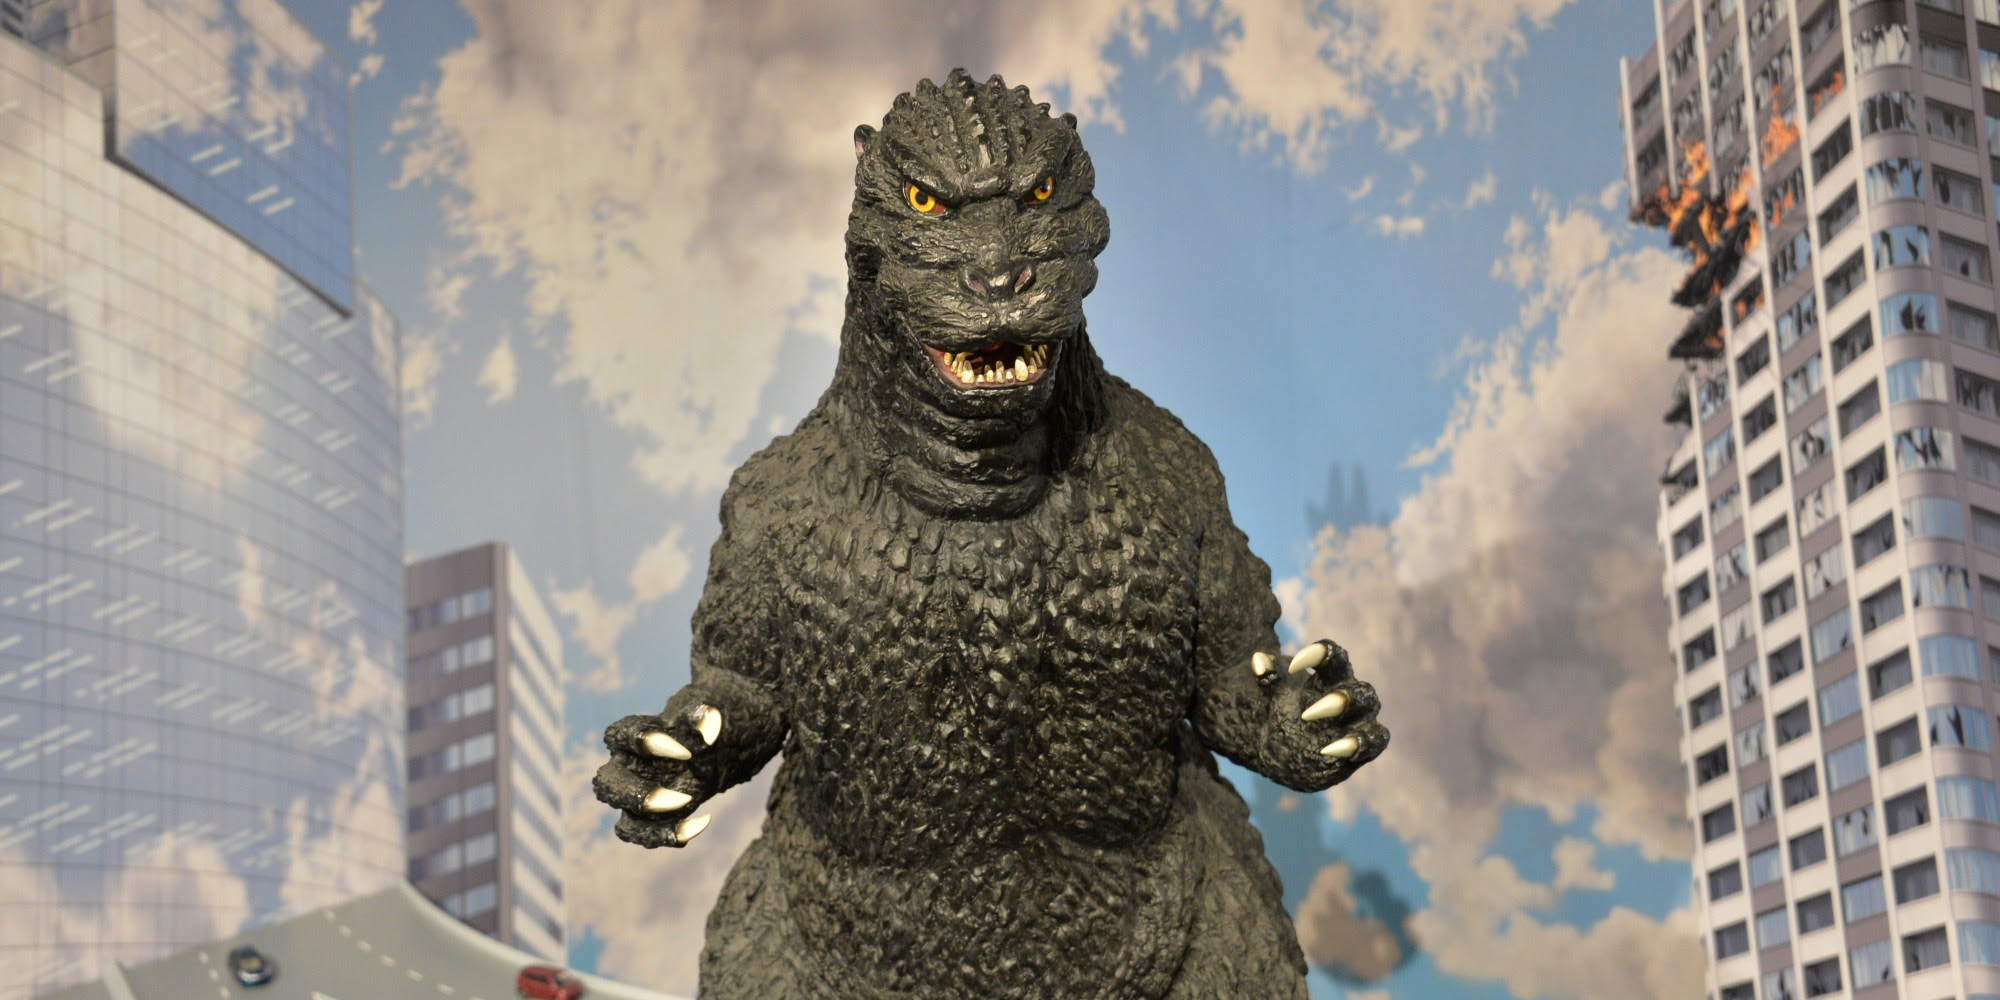 U.S. Air Force: We're Not Afraid Of Godzilla | HuffPost